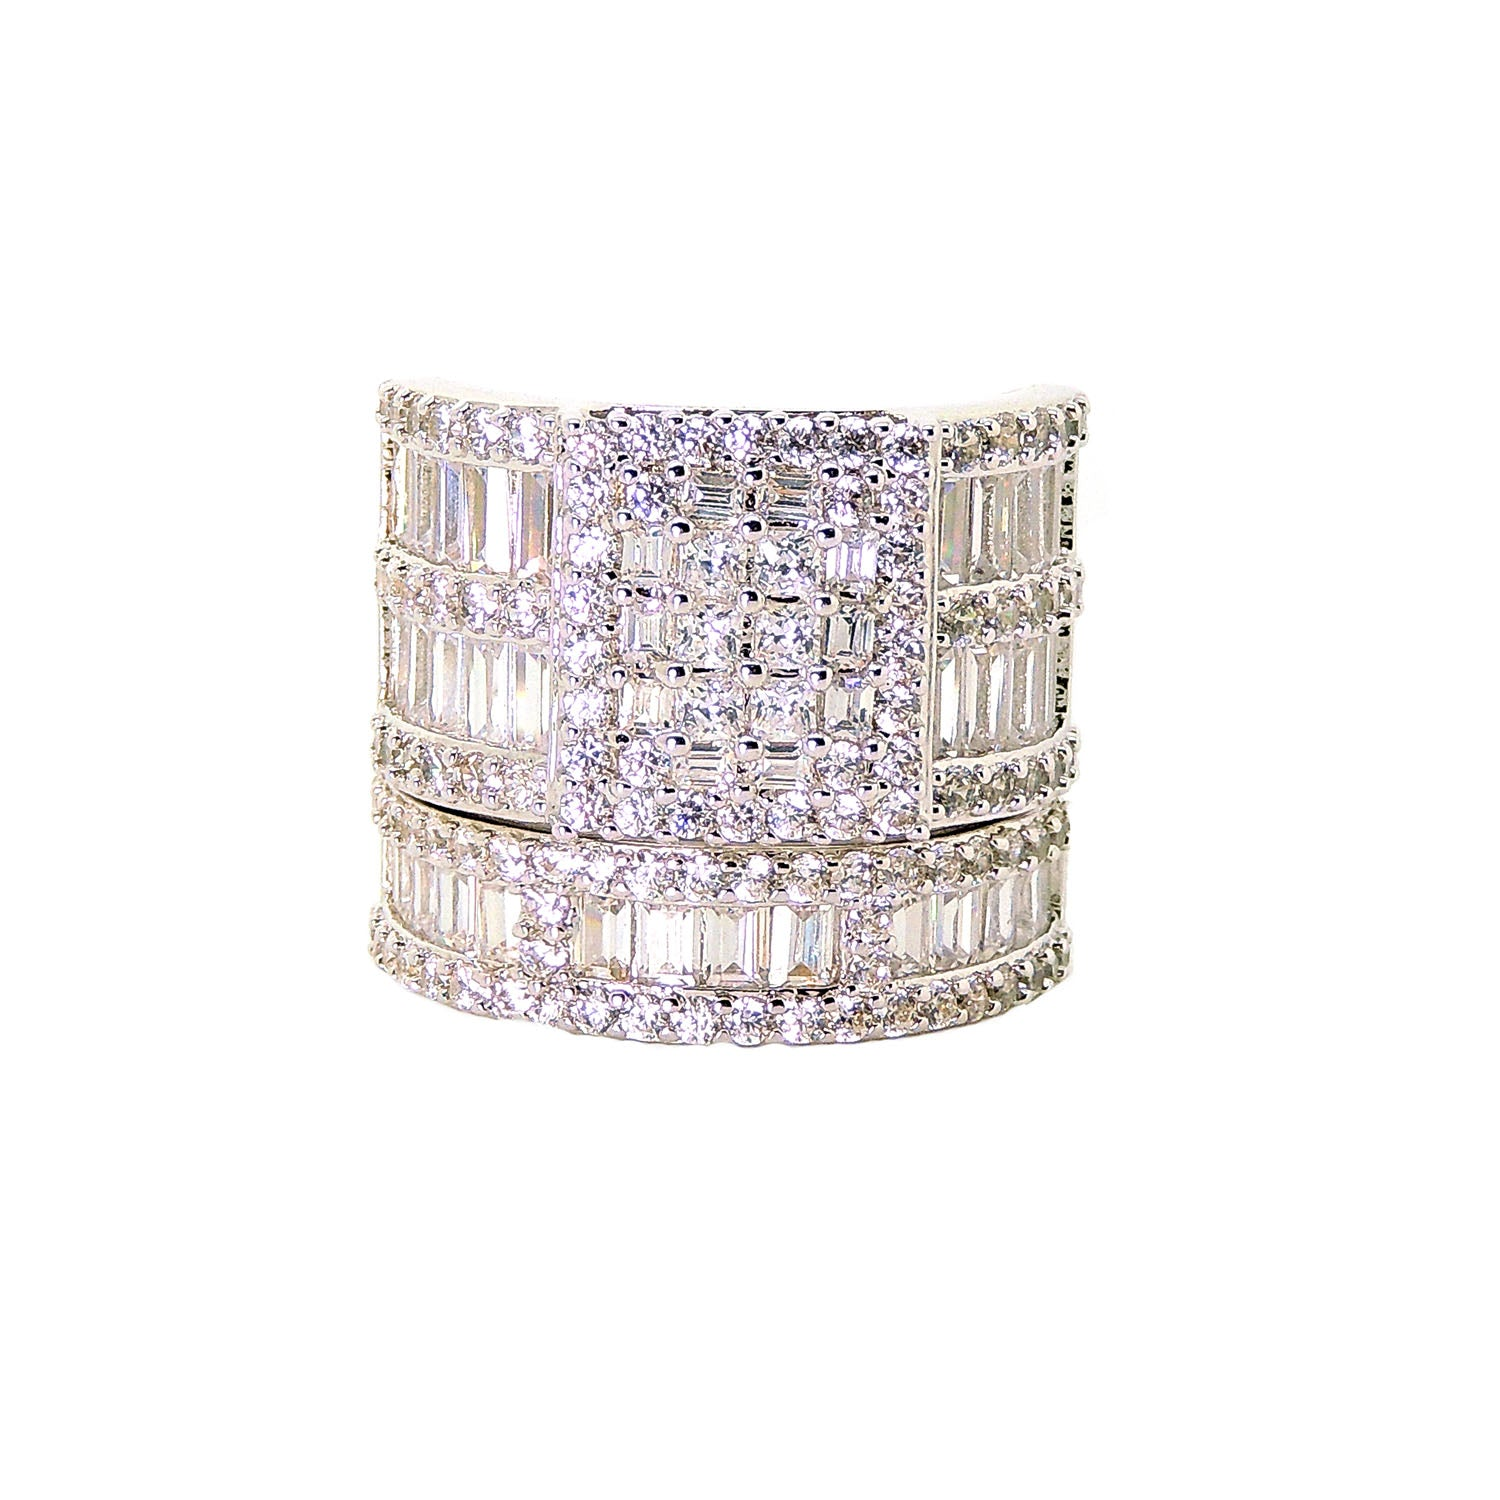 Camilla Square Cubic Zirconia Engagement Ring Wedding Band Bridal Set for Women by Ginger Lyne Ultra Wide Width Baguette and Round Multi Cut Stones Statement Piece Choice of Metal